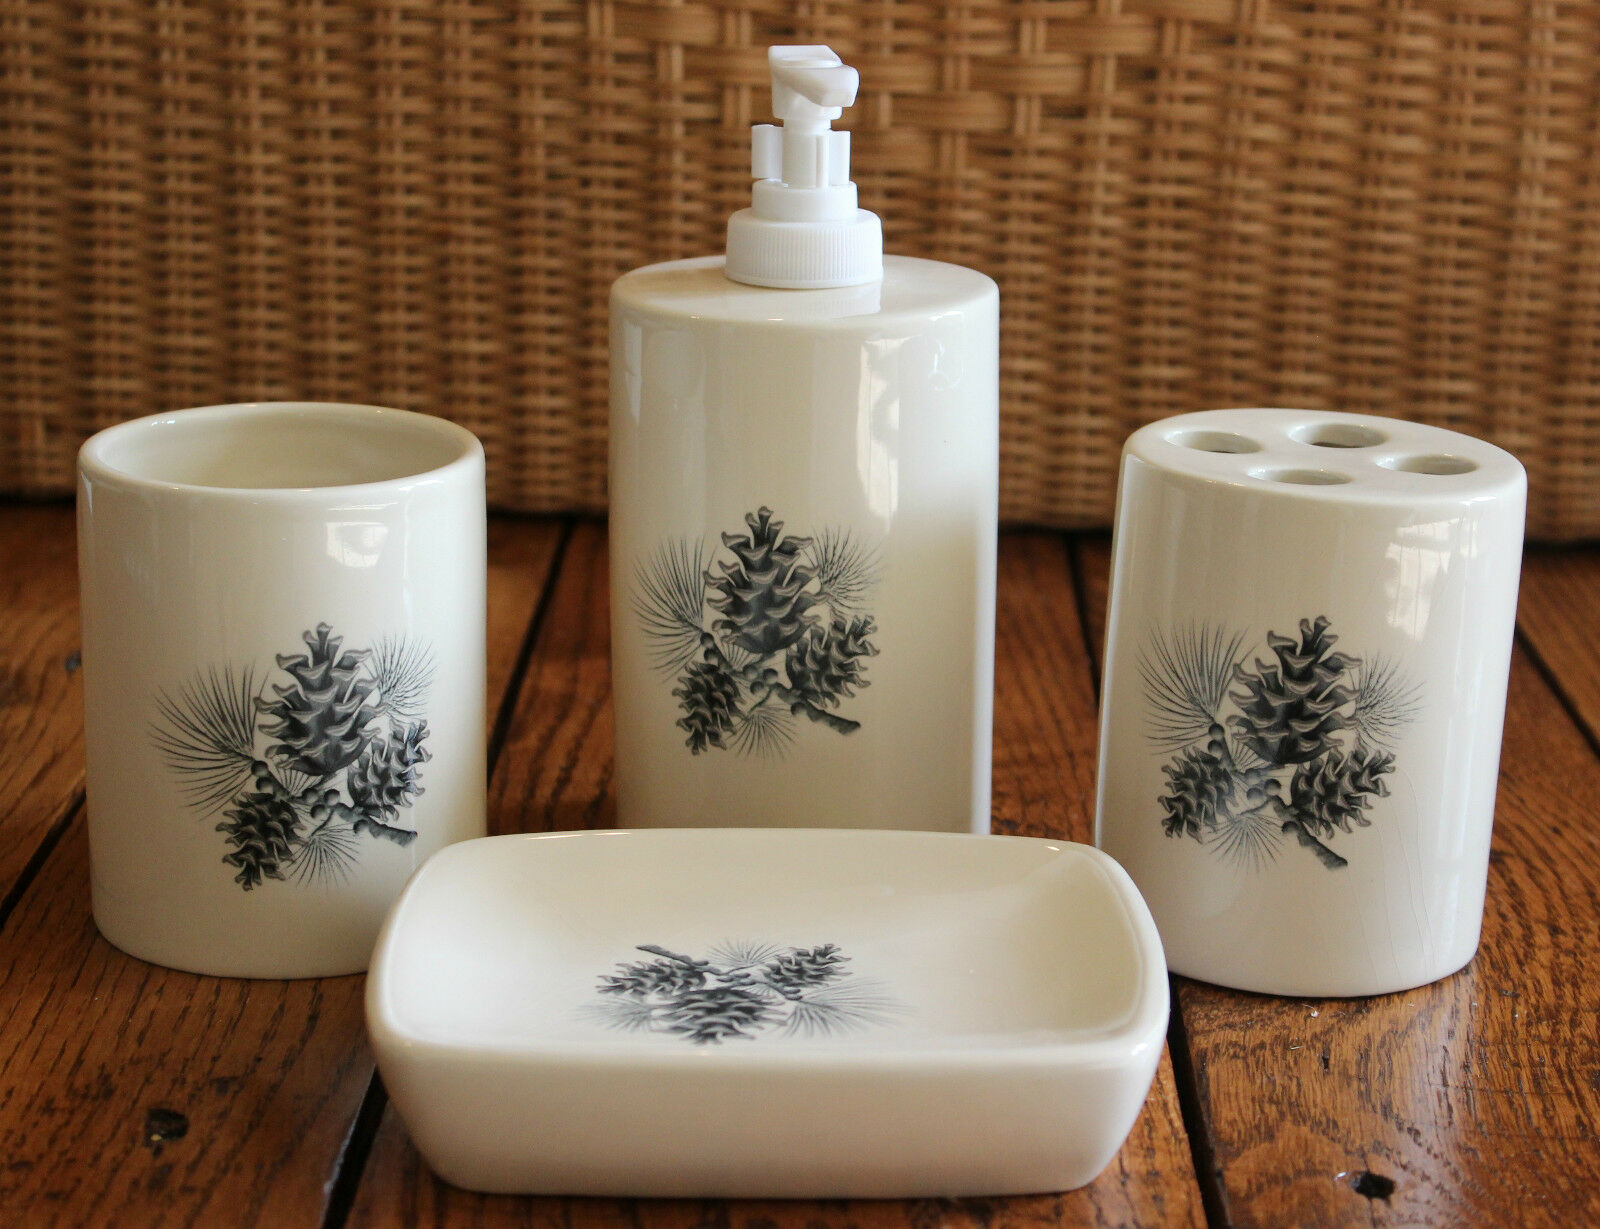 New Pine Cone Cabin Bathroom Set Of 4 Toothbrush Holder Cup Soap Dispenser  Dish 1 Of 5FREE Shipping ...